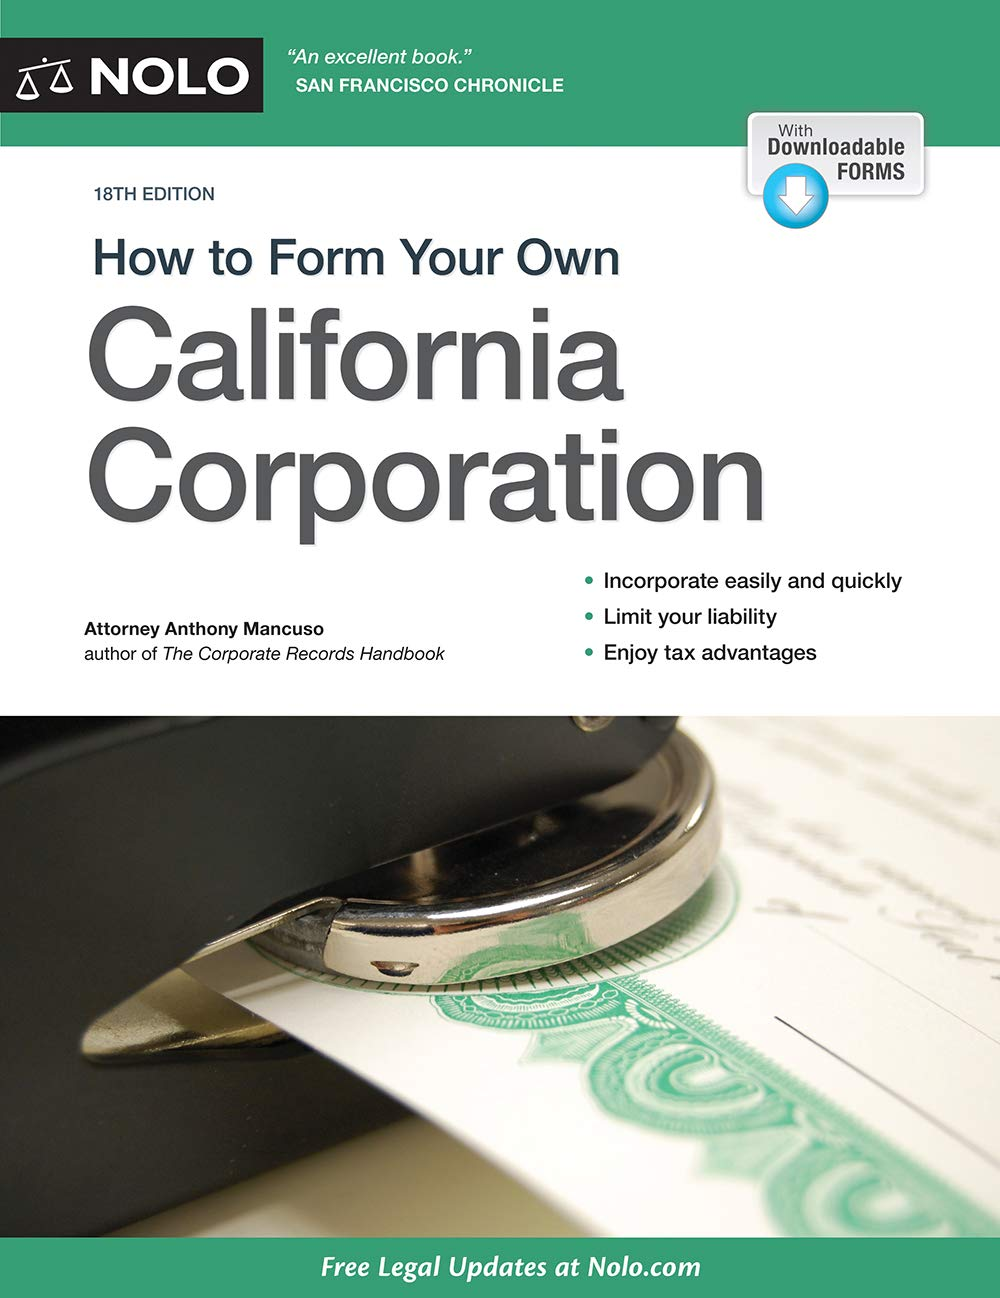 Buy How to Form Your Own California Corporation: Includes